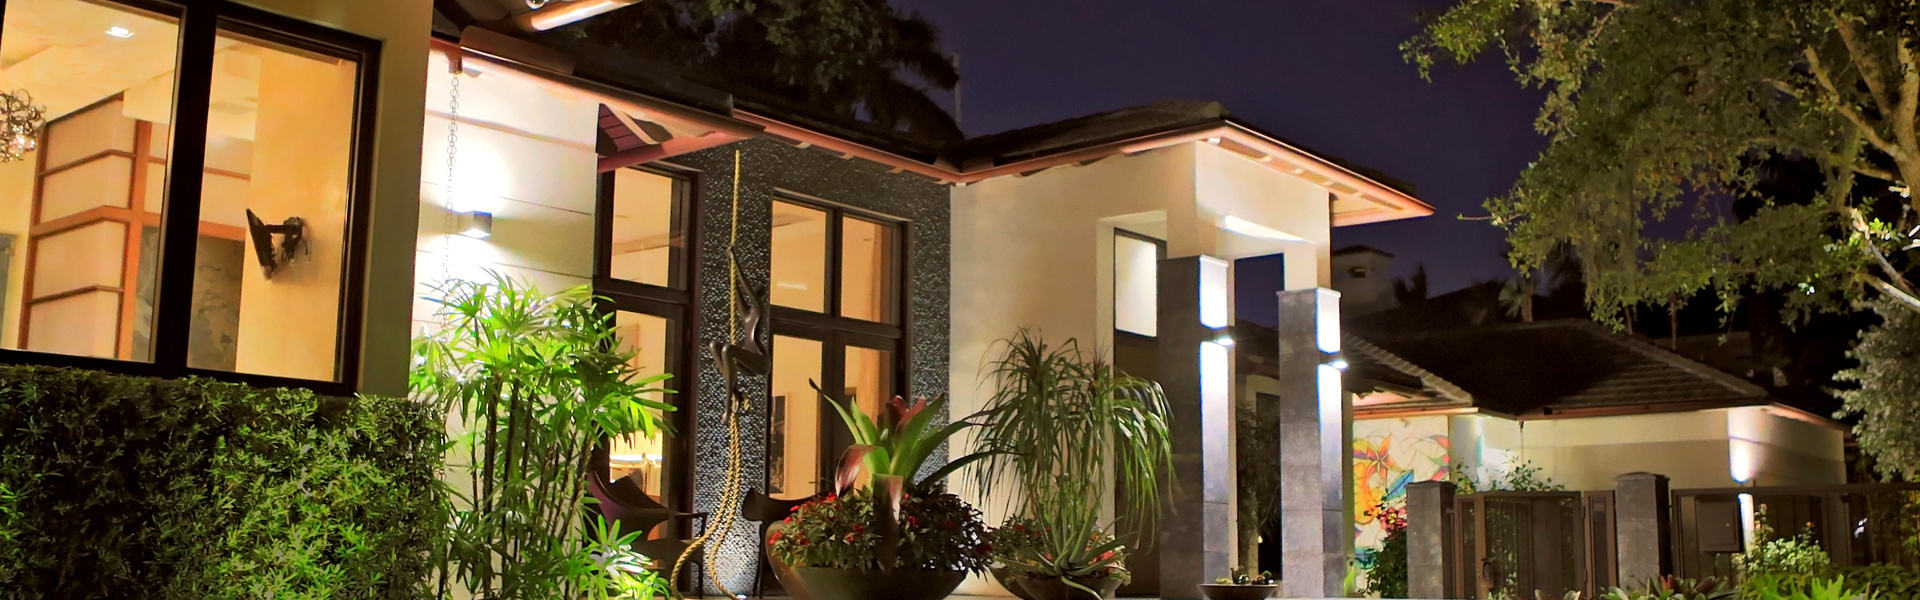 Smart home installation by First Priority Audio for Fort Lauderdale